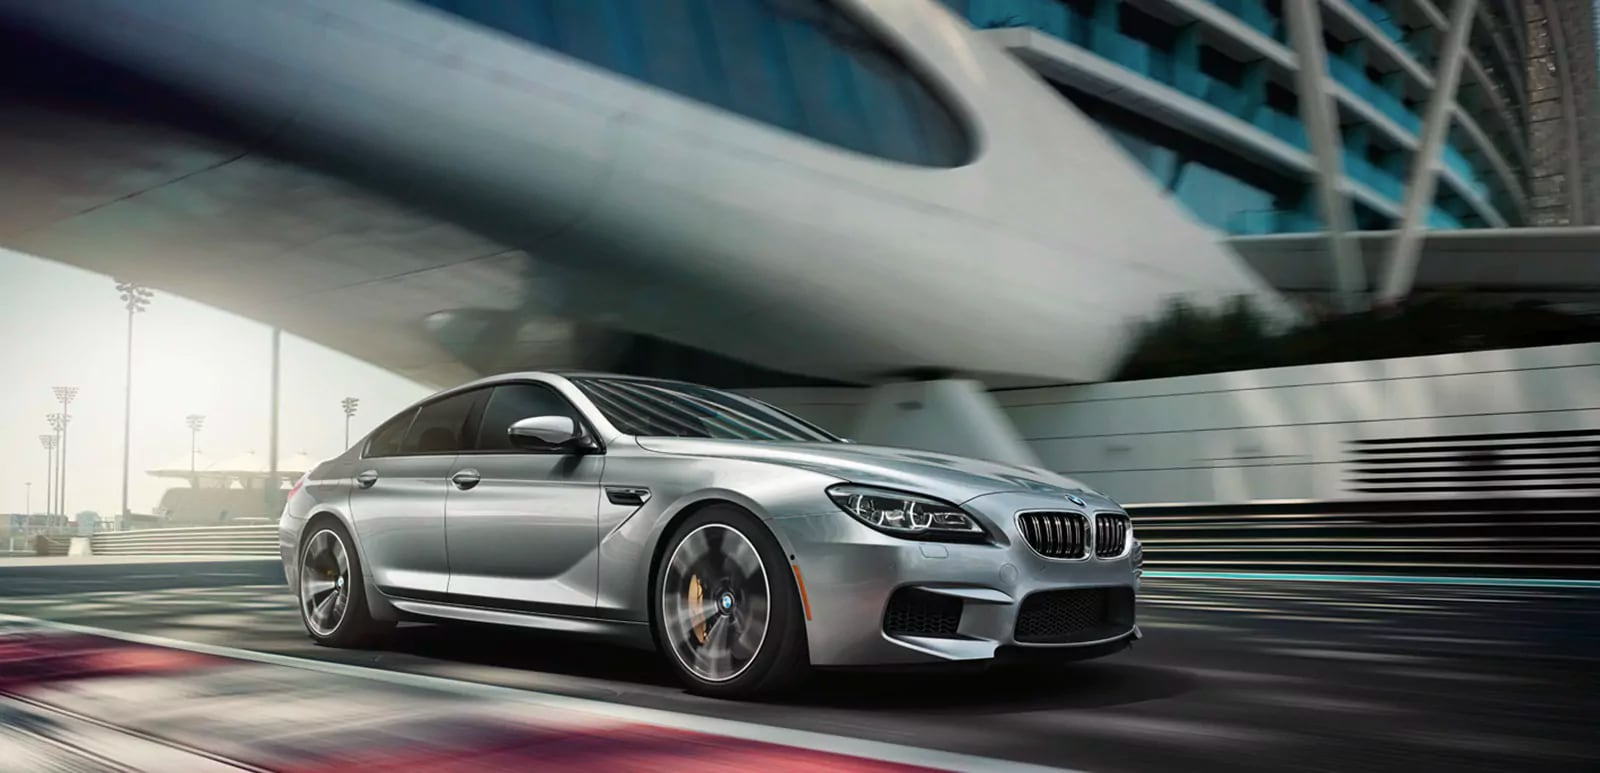 Close shot of the 2019 BMW M6 Gran Coupe accelerating on a racetrack